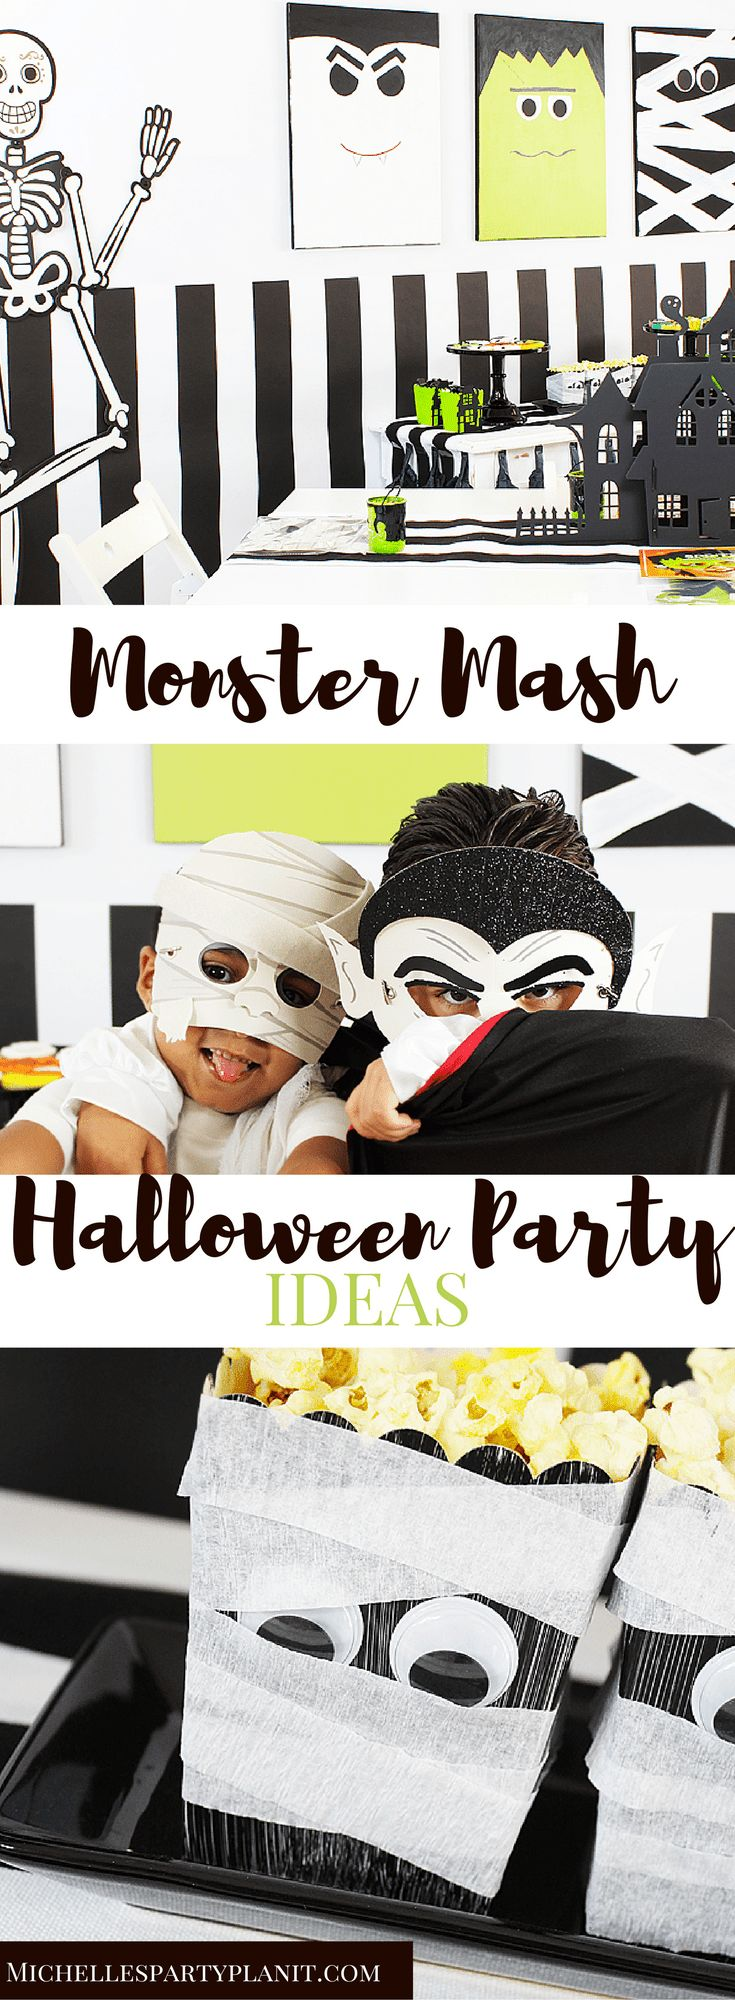 Monster Mash Halloween Party Ideas